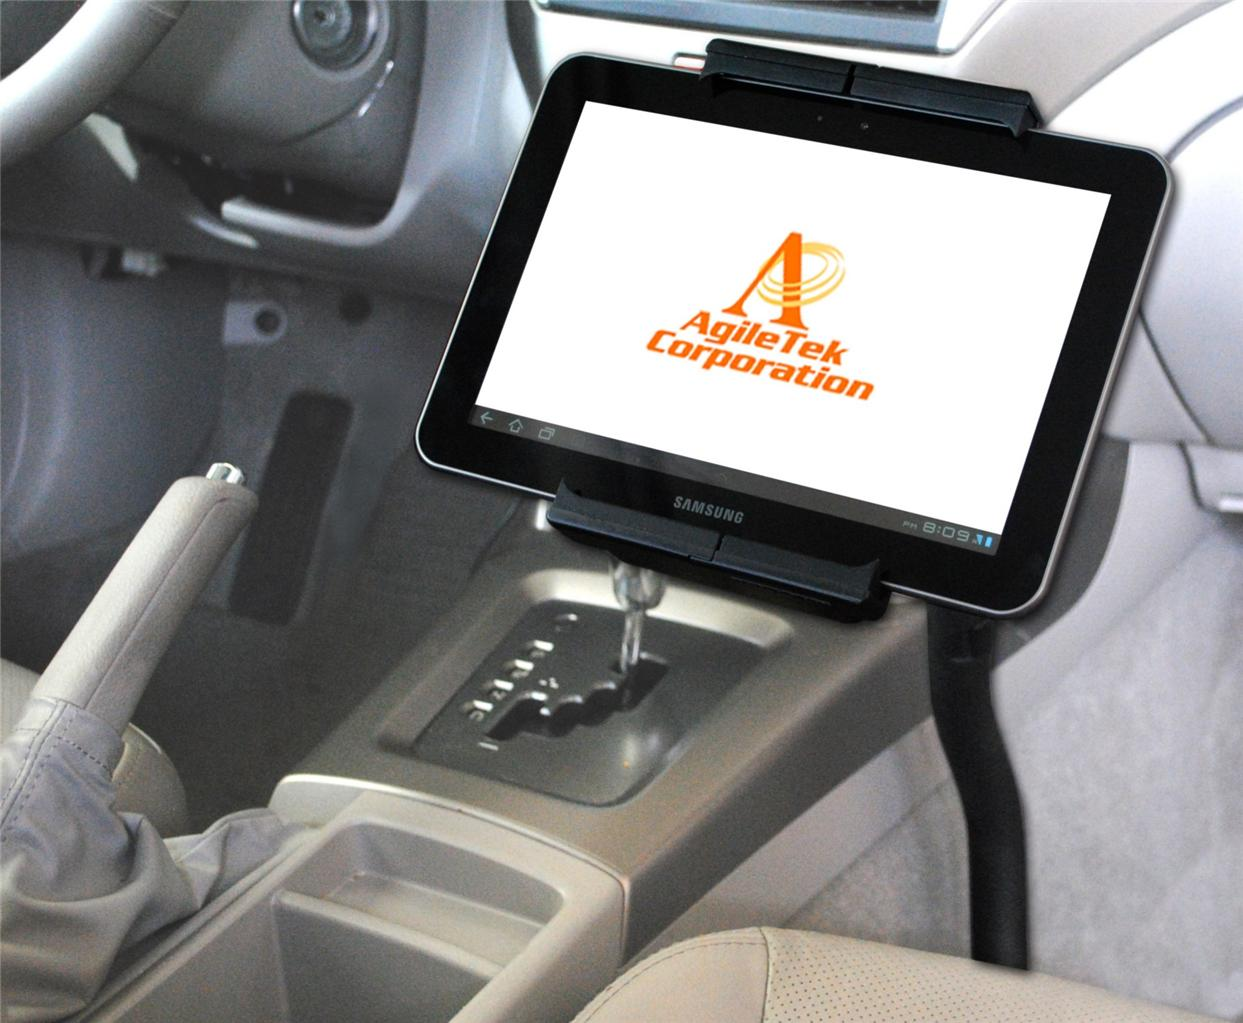 Samsung Tablet Car Seat Holder